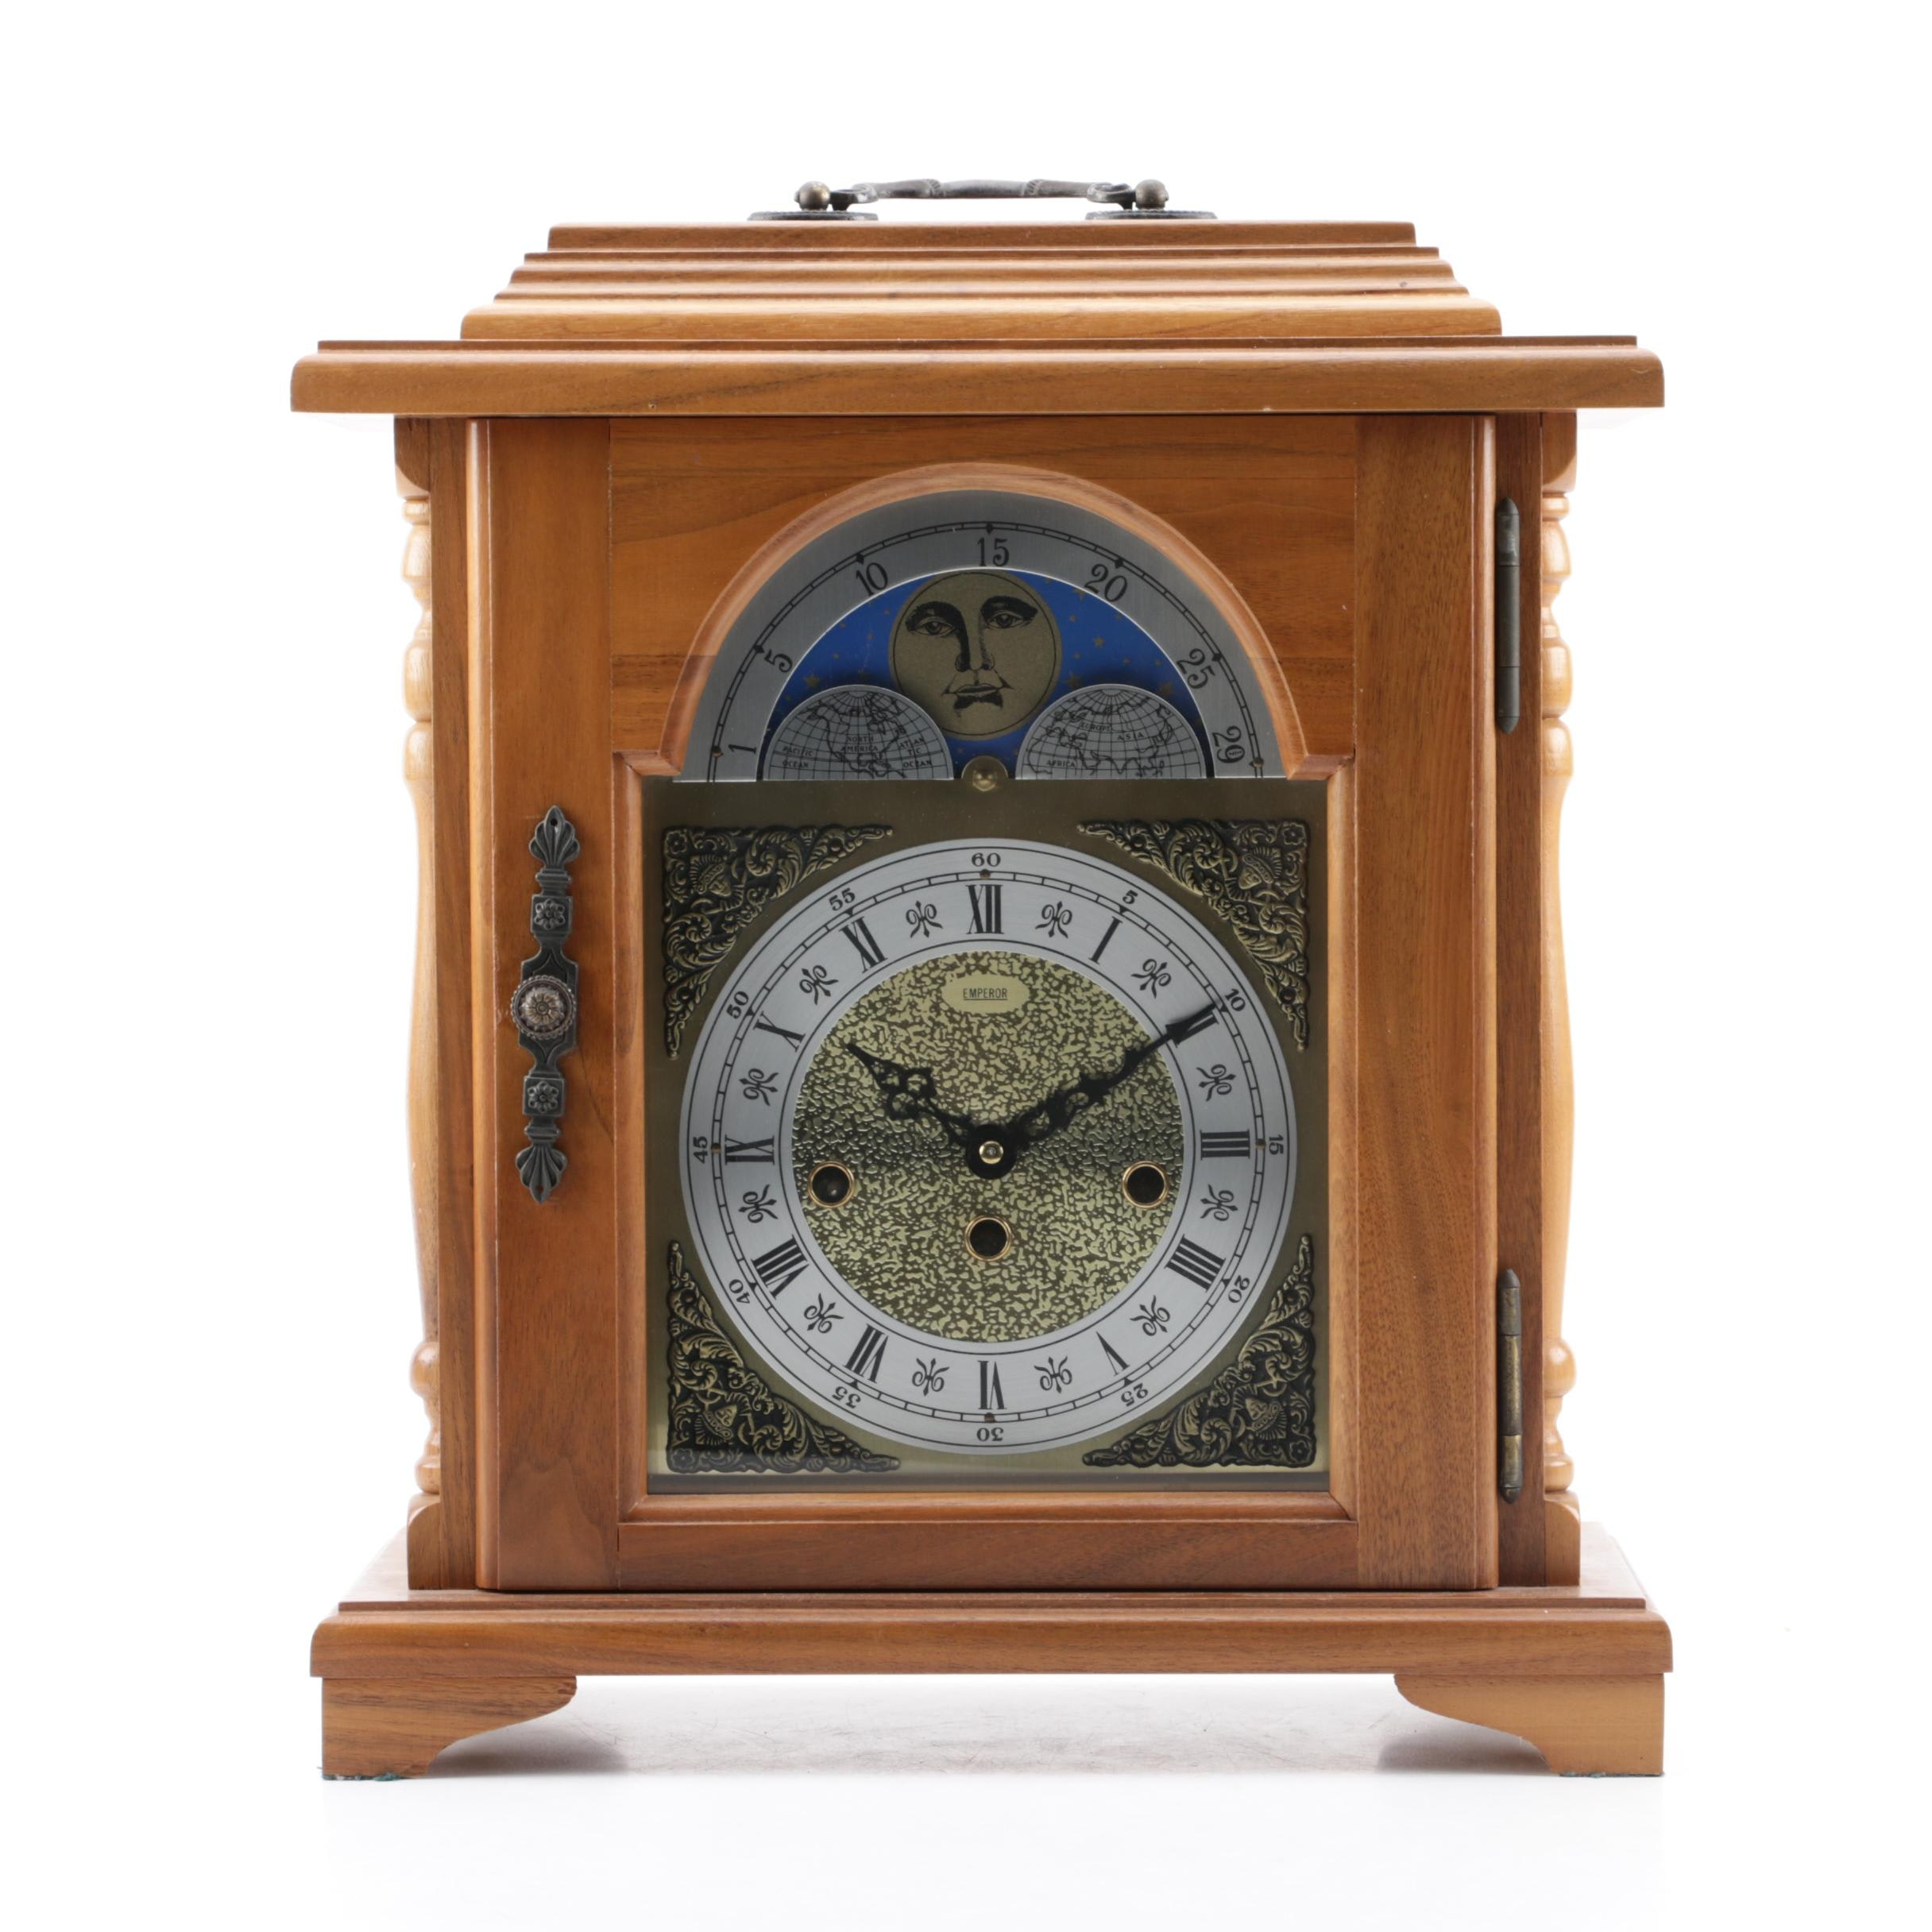 Emperor Carriage Mantel Clock with Franz Hermle Movement and Moon Phase Dial